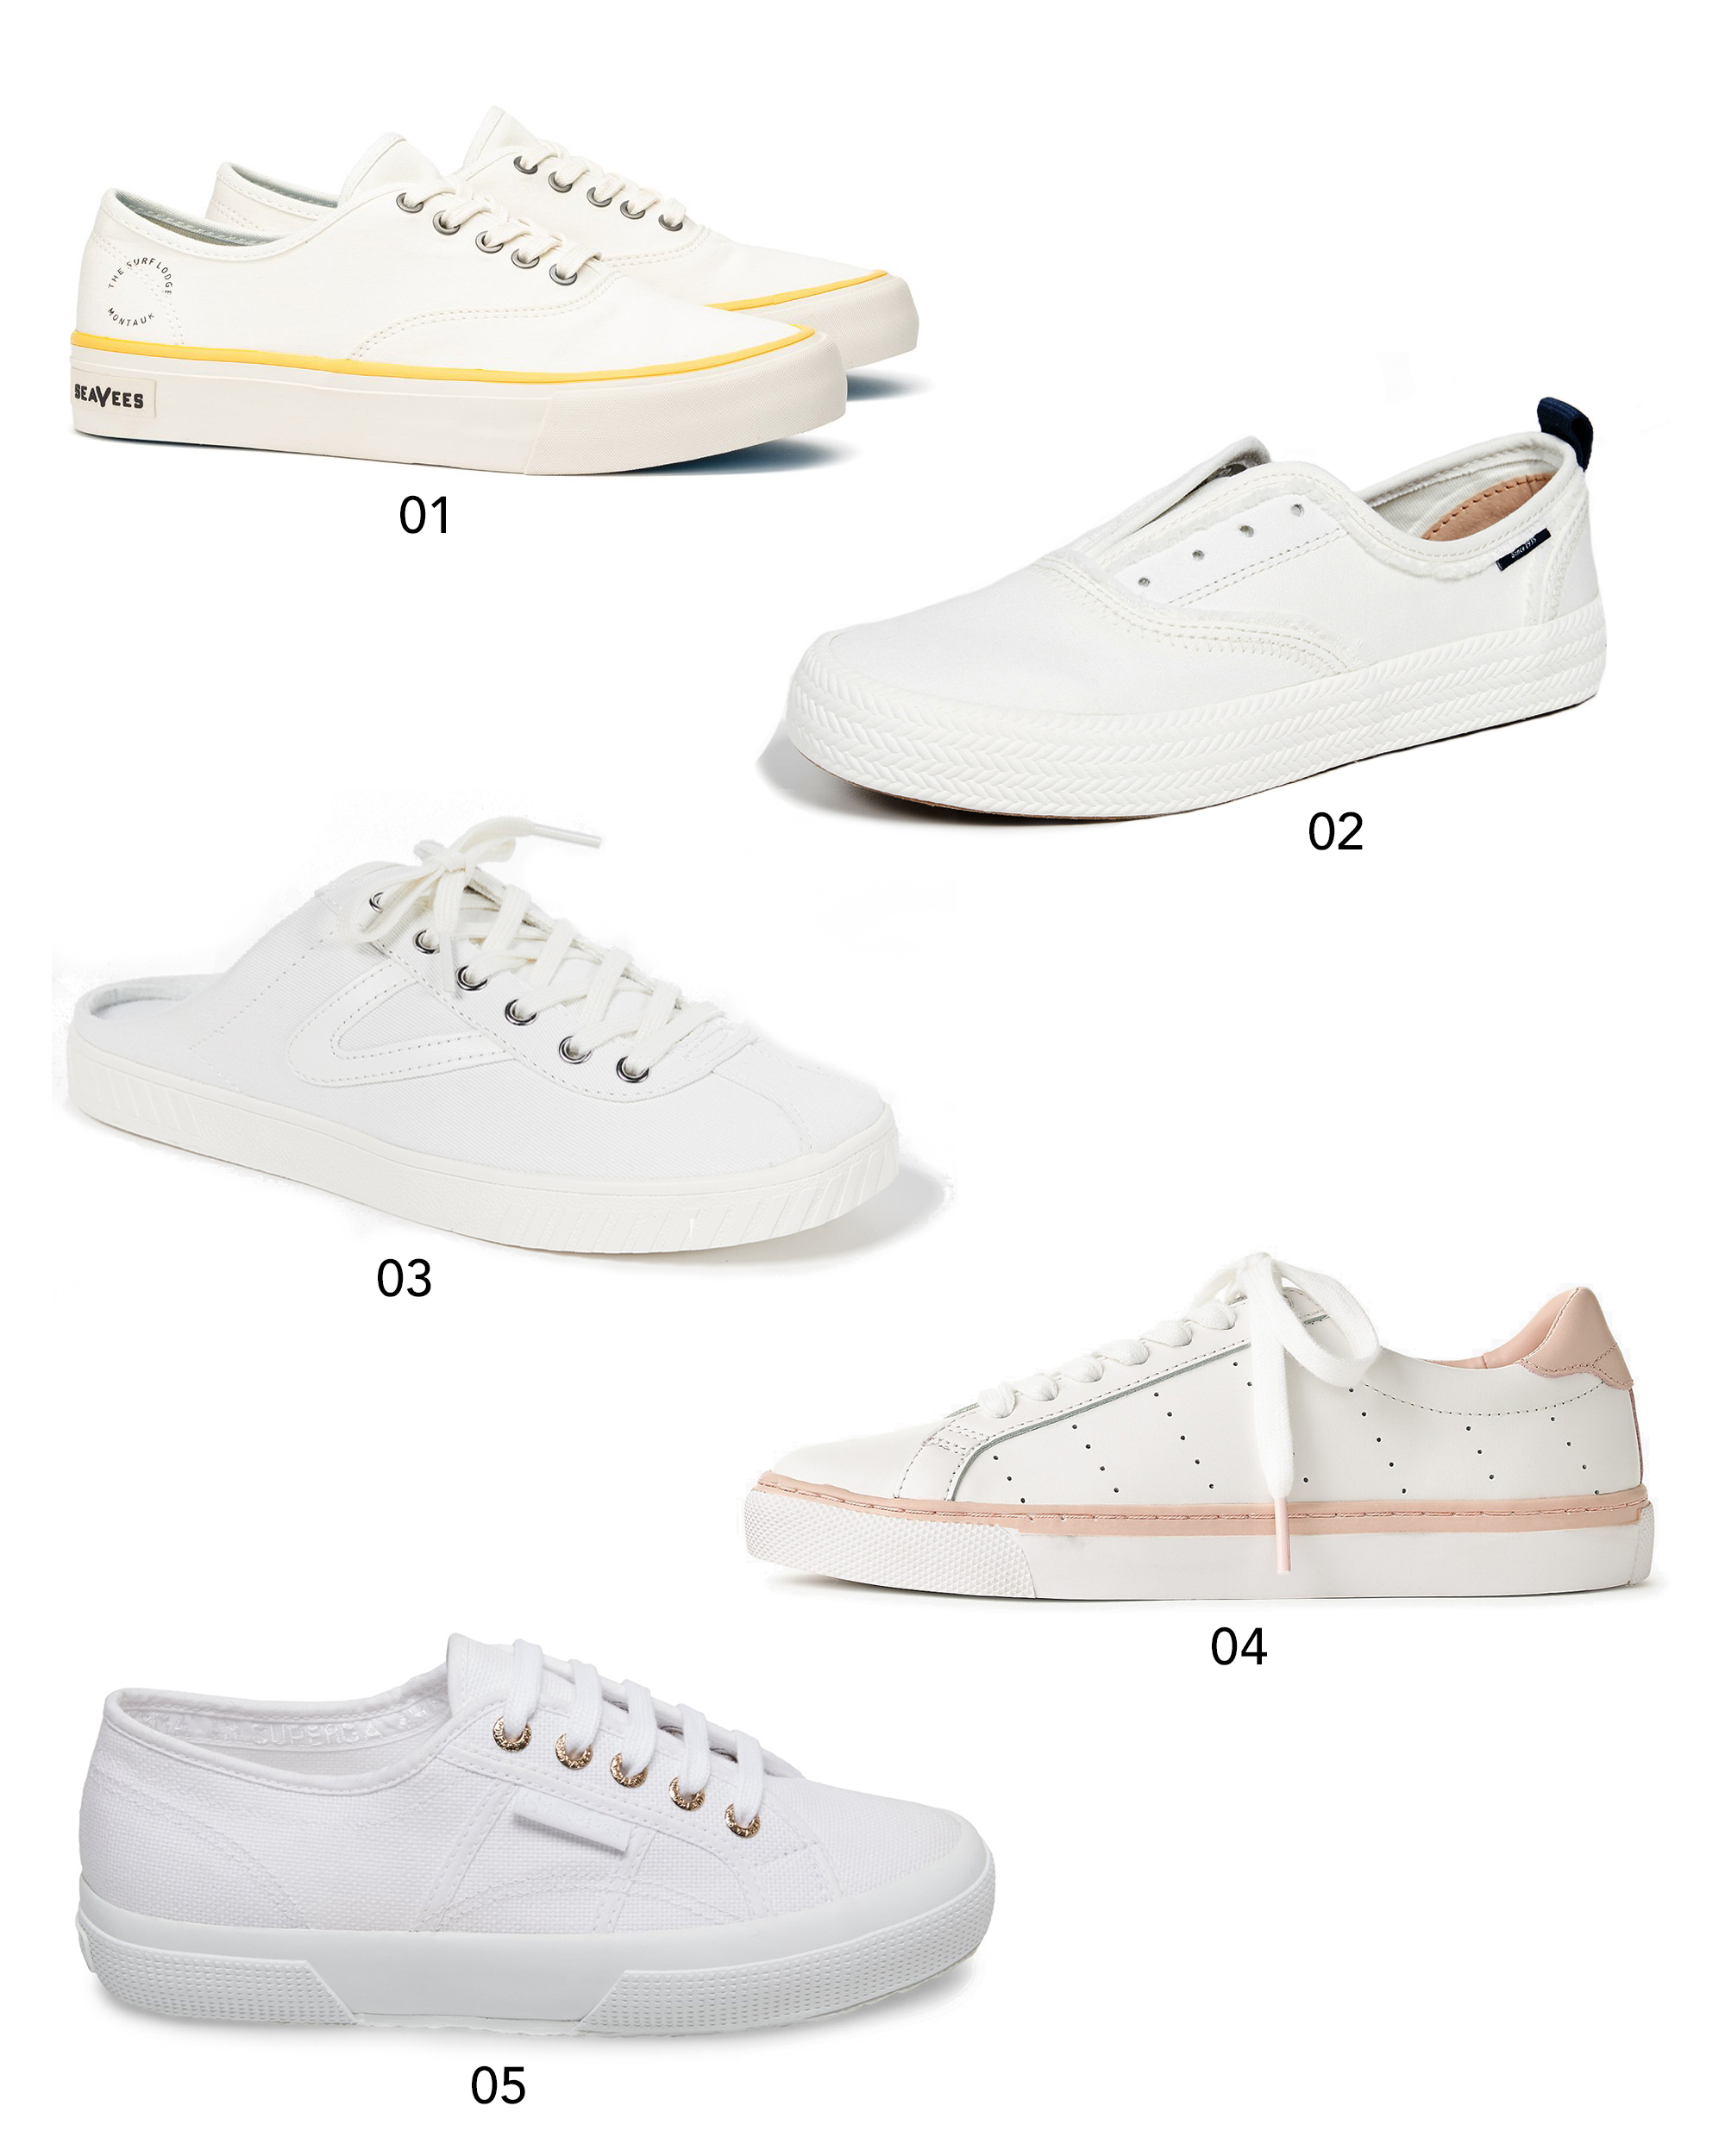 10 Classic White Sneakers Under $100 | Design Confetti